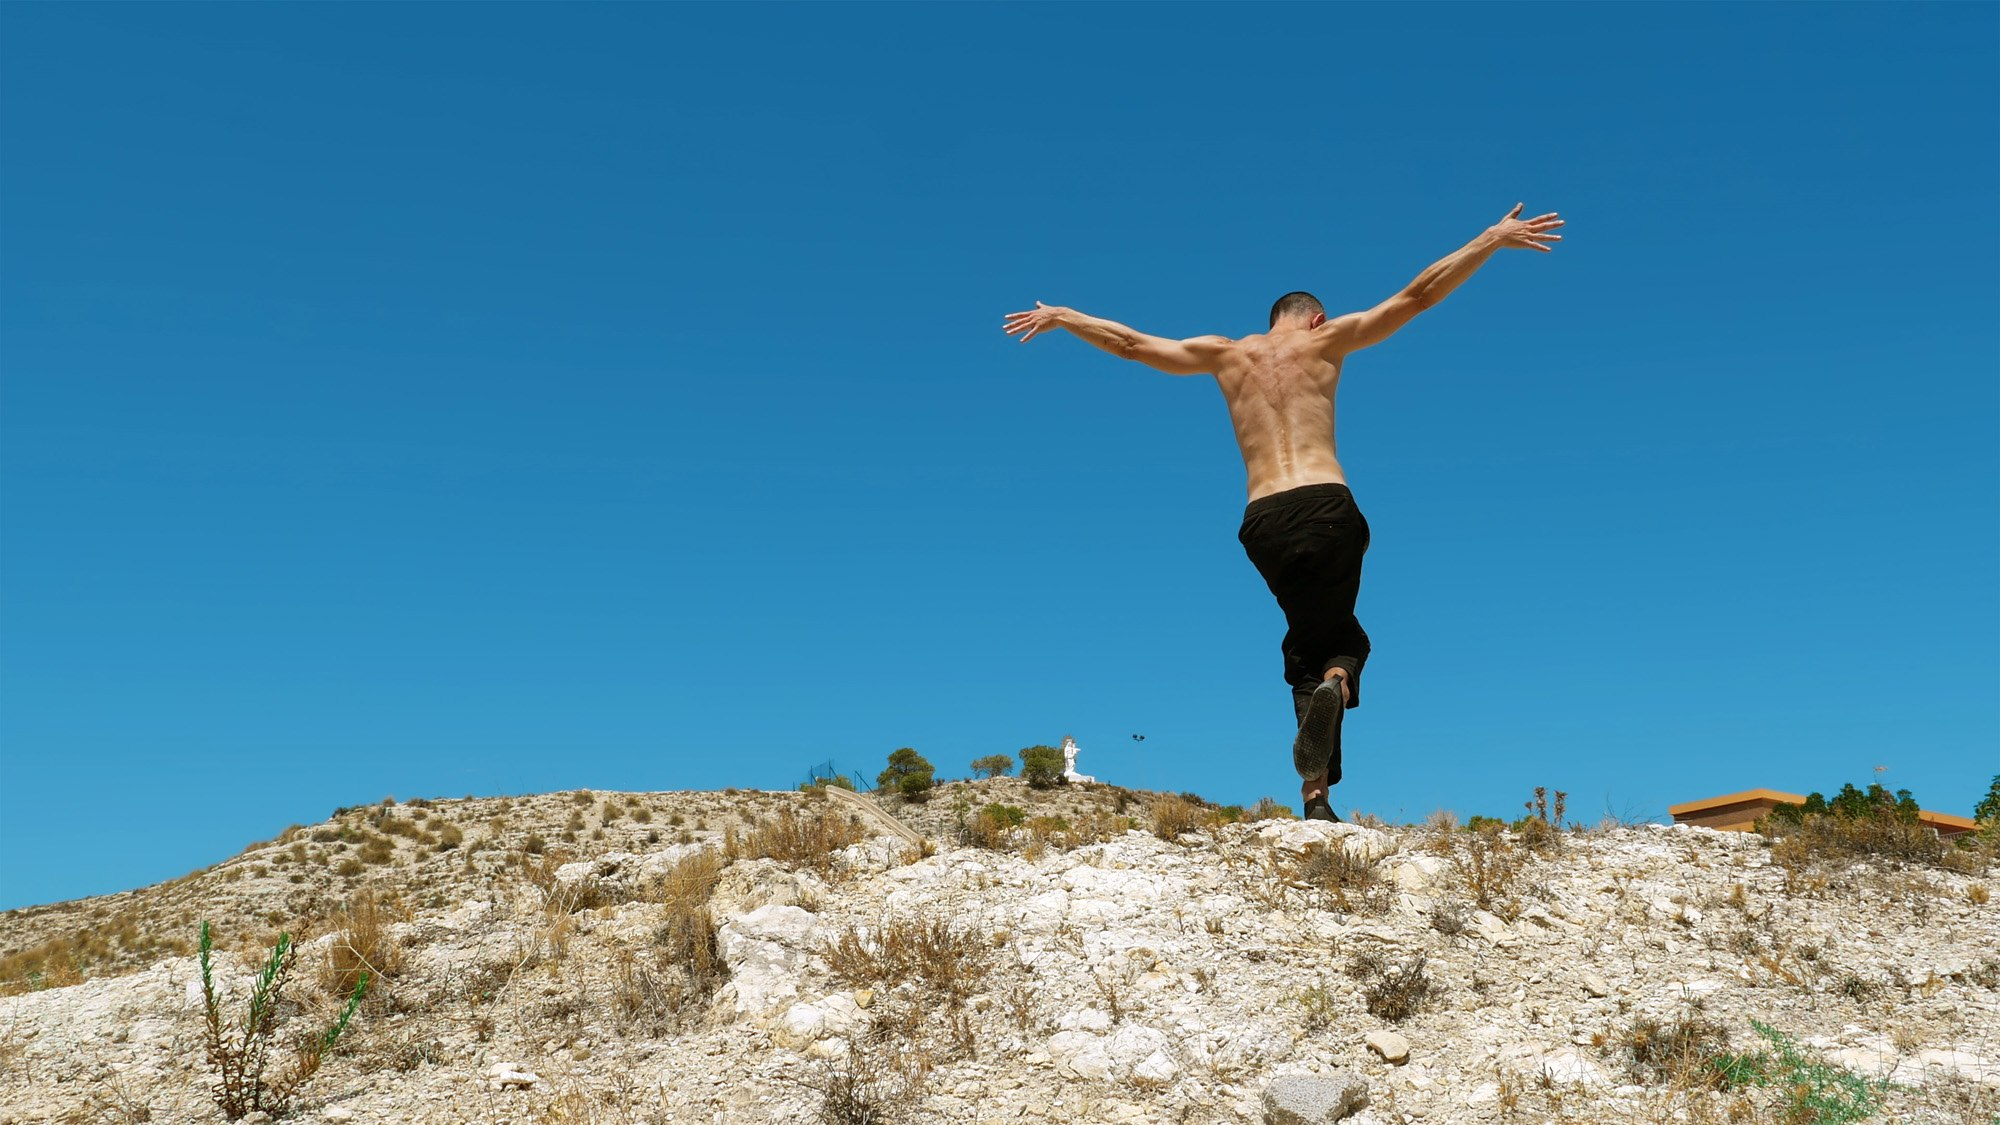 A shirtless man dances with his back to the camera. His arms are extended, christ like. He is in the desert, beneath a big blue sky.